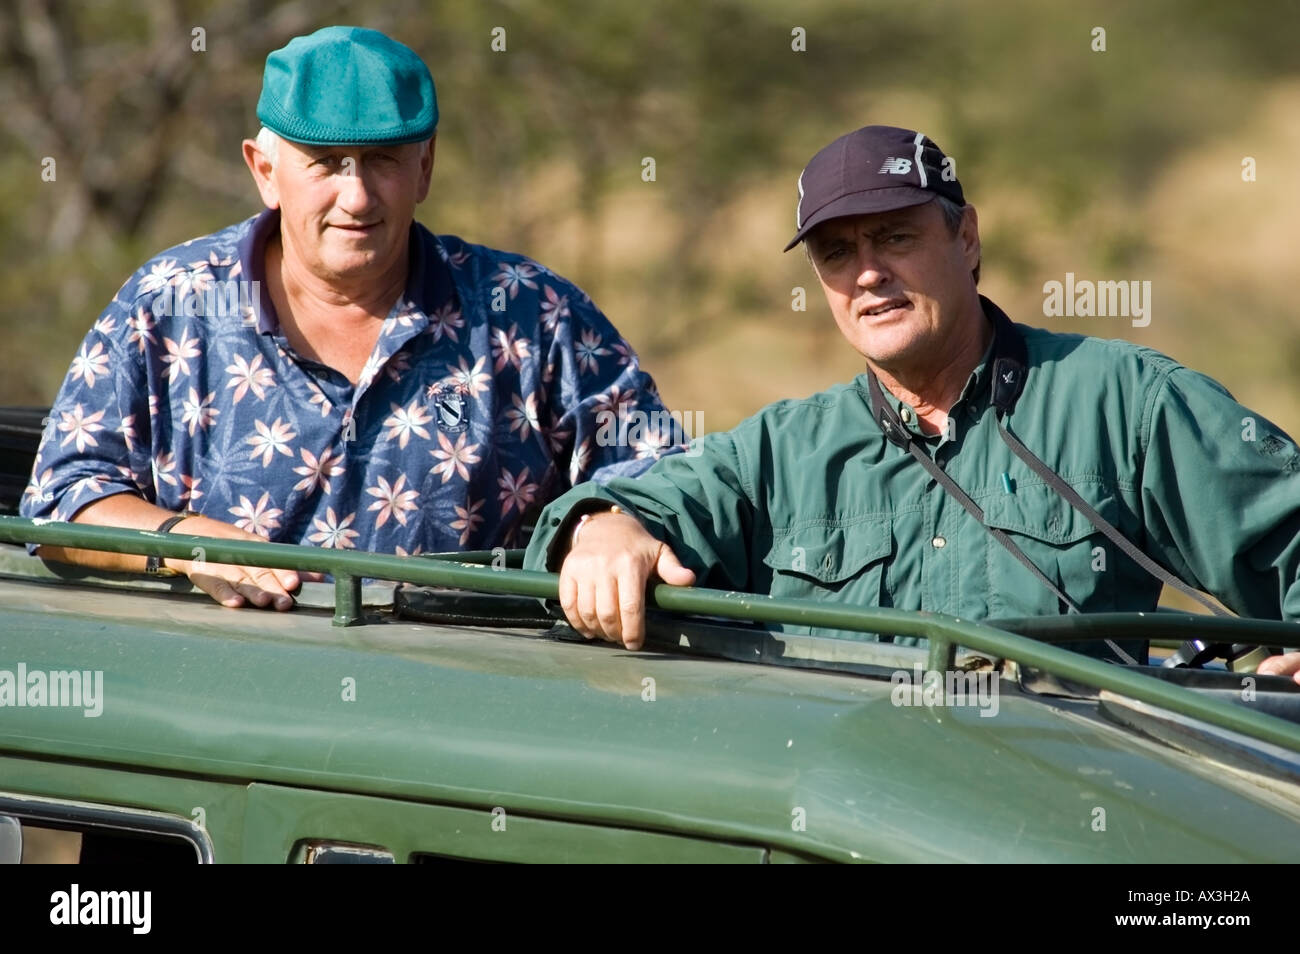 Safari buddies on a game drive while on vacation in Lobo, Serengetti plain, Tanzania, East Africa. - Stock Image